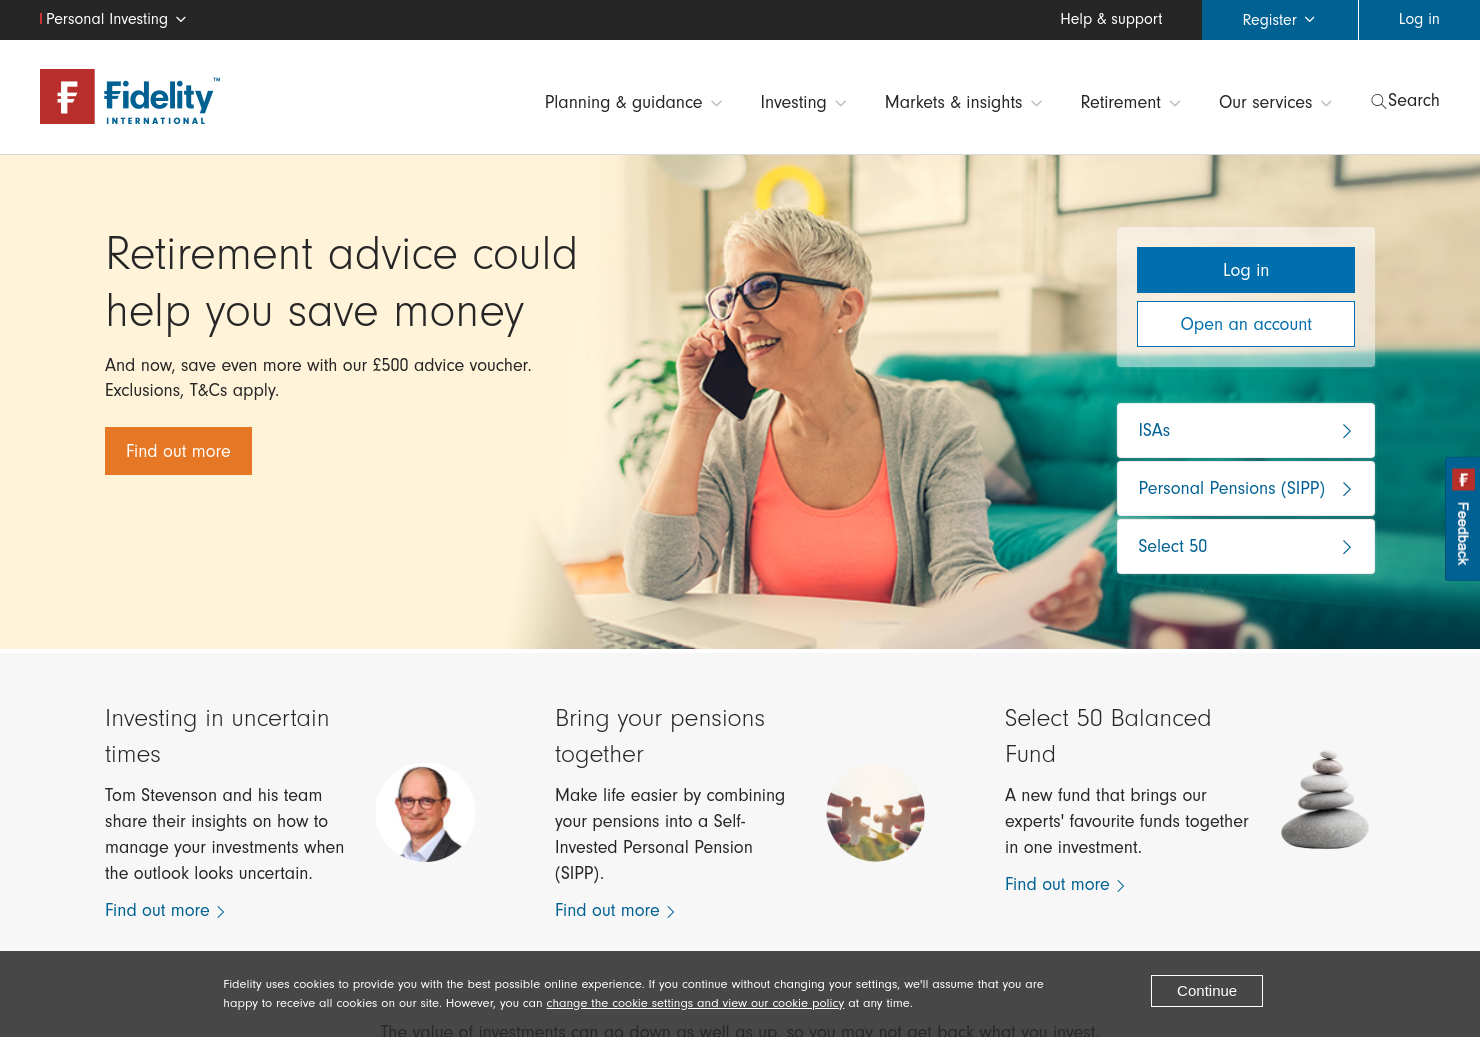 Fidelity Home Page